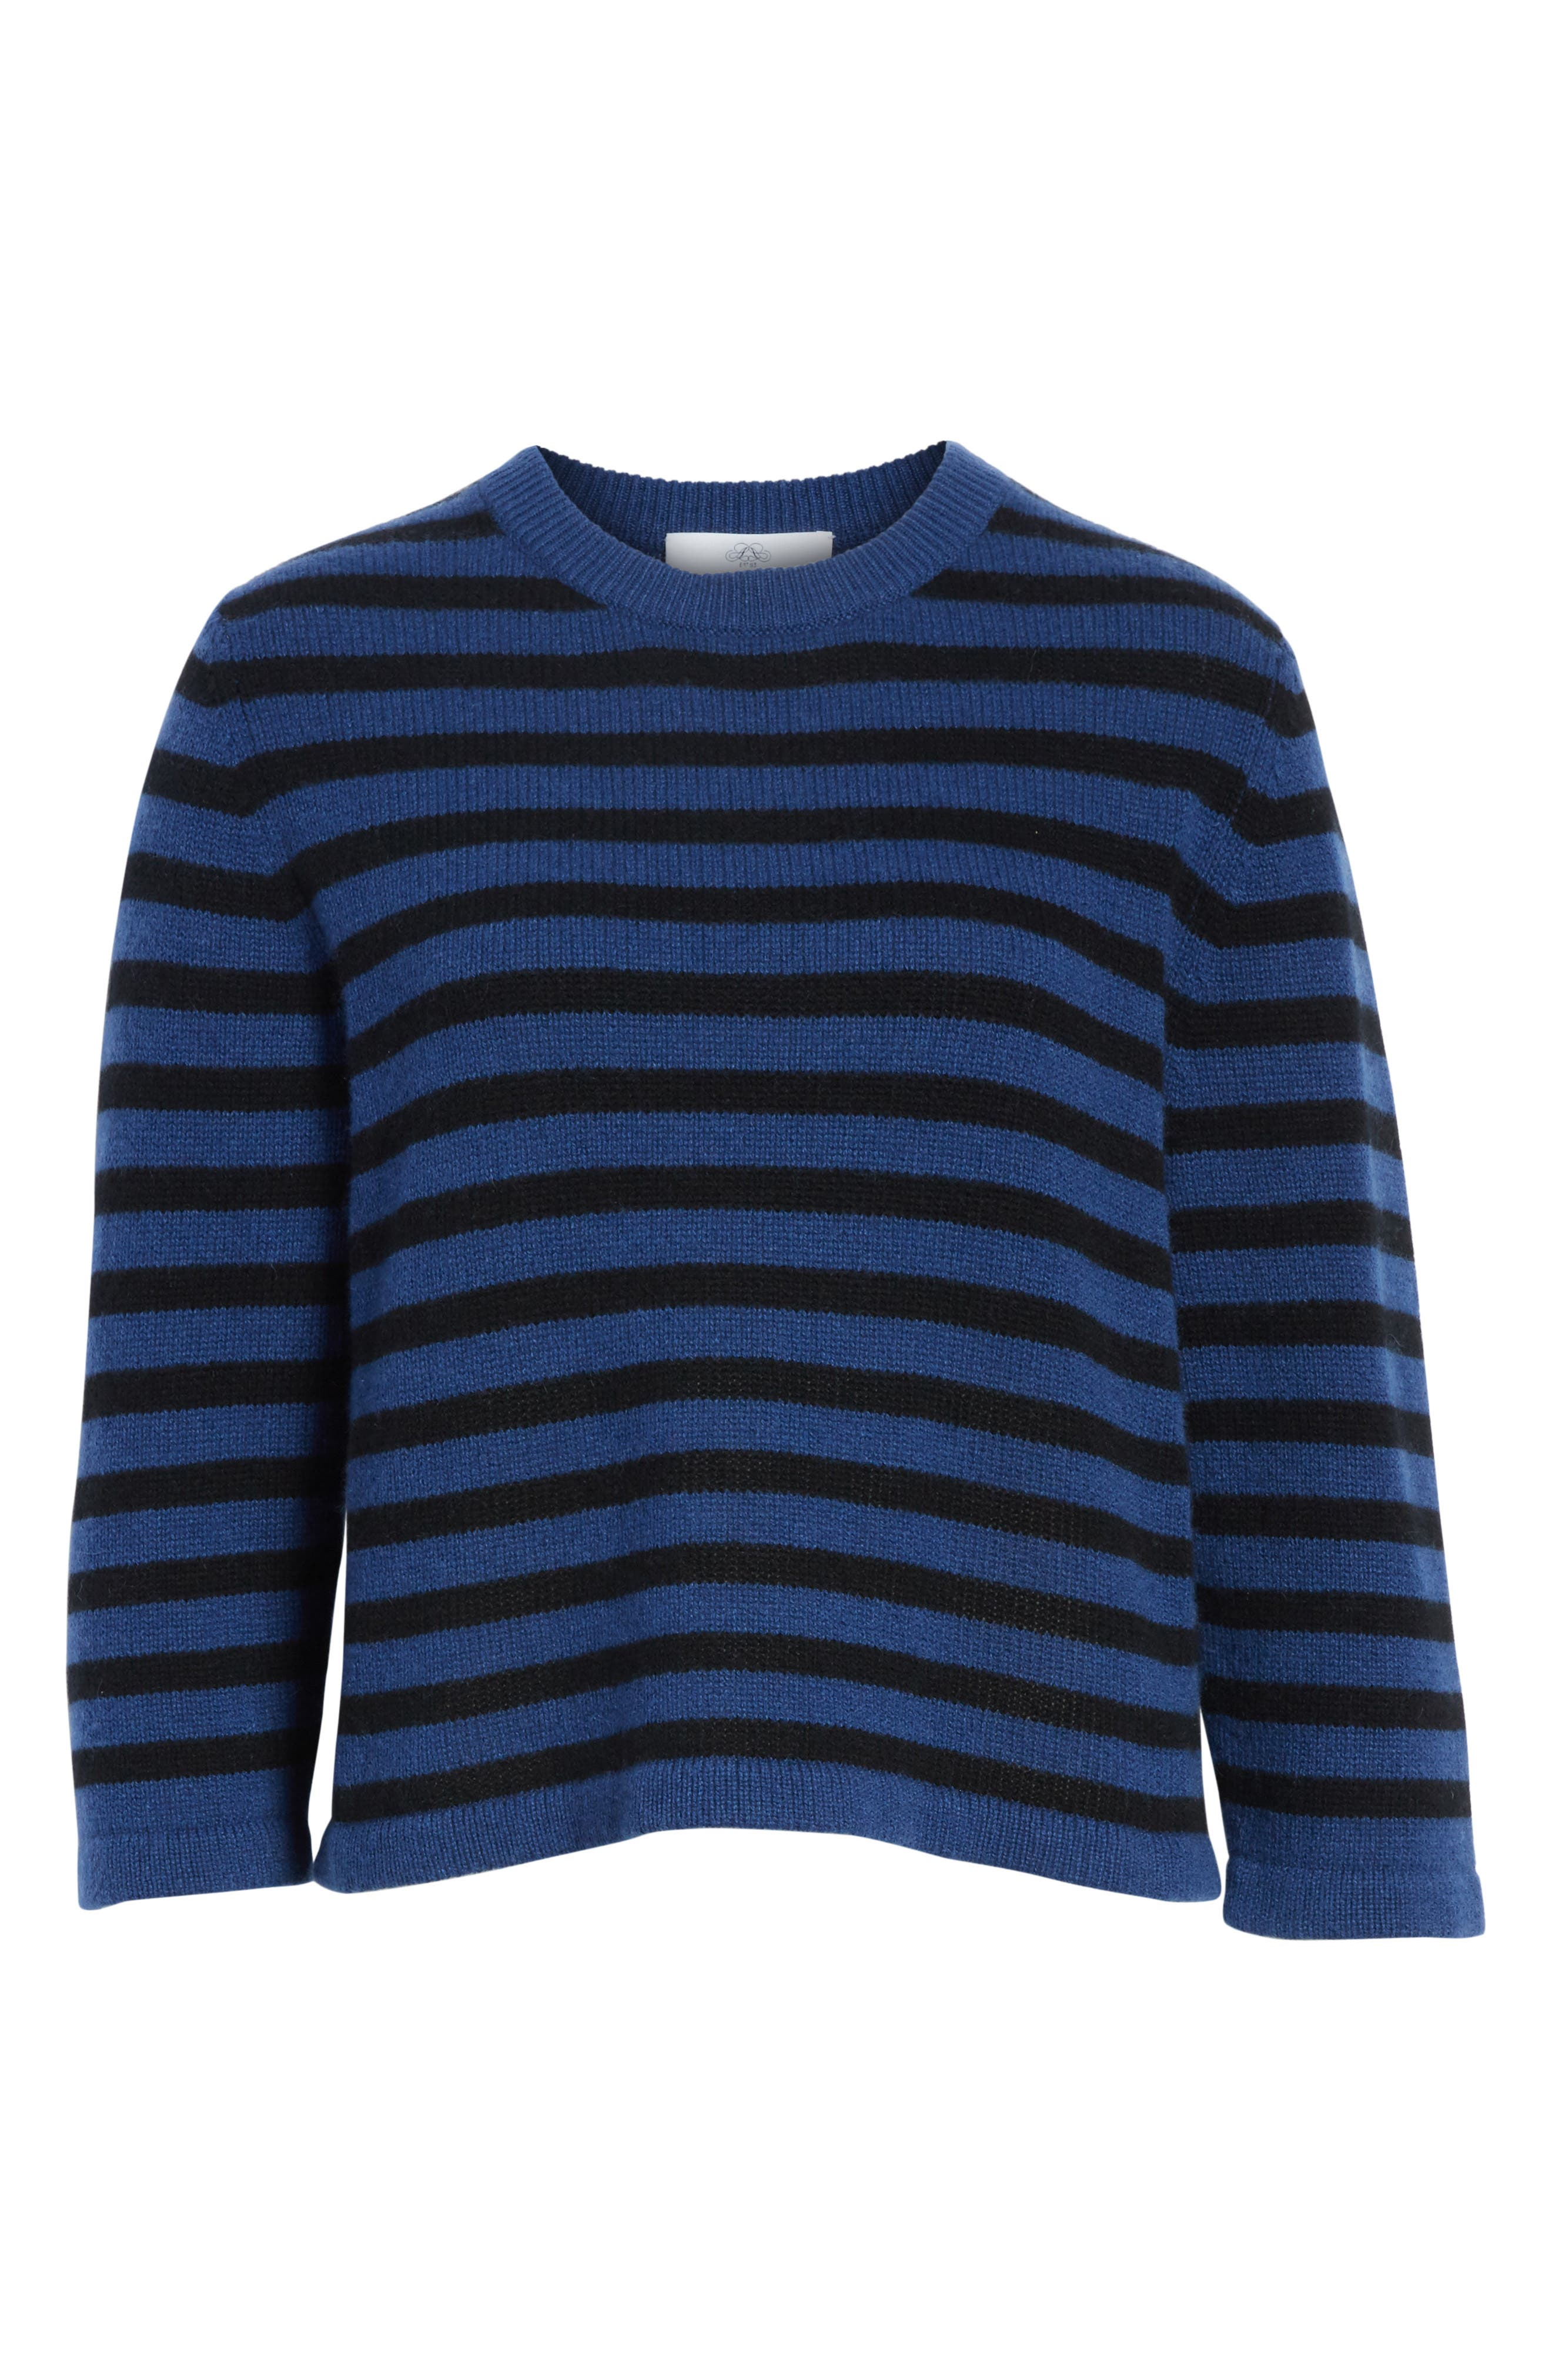 Crop Cashmere Sweater,                             Alternate thumbnail 6, color,                             Blue W/ Black Stripe